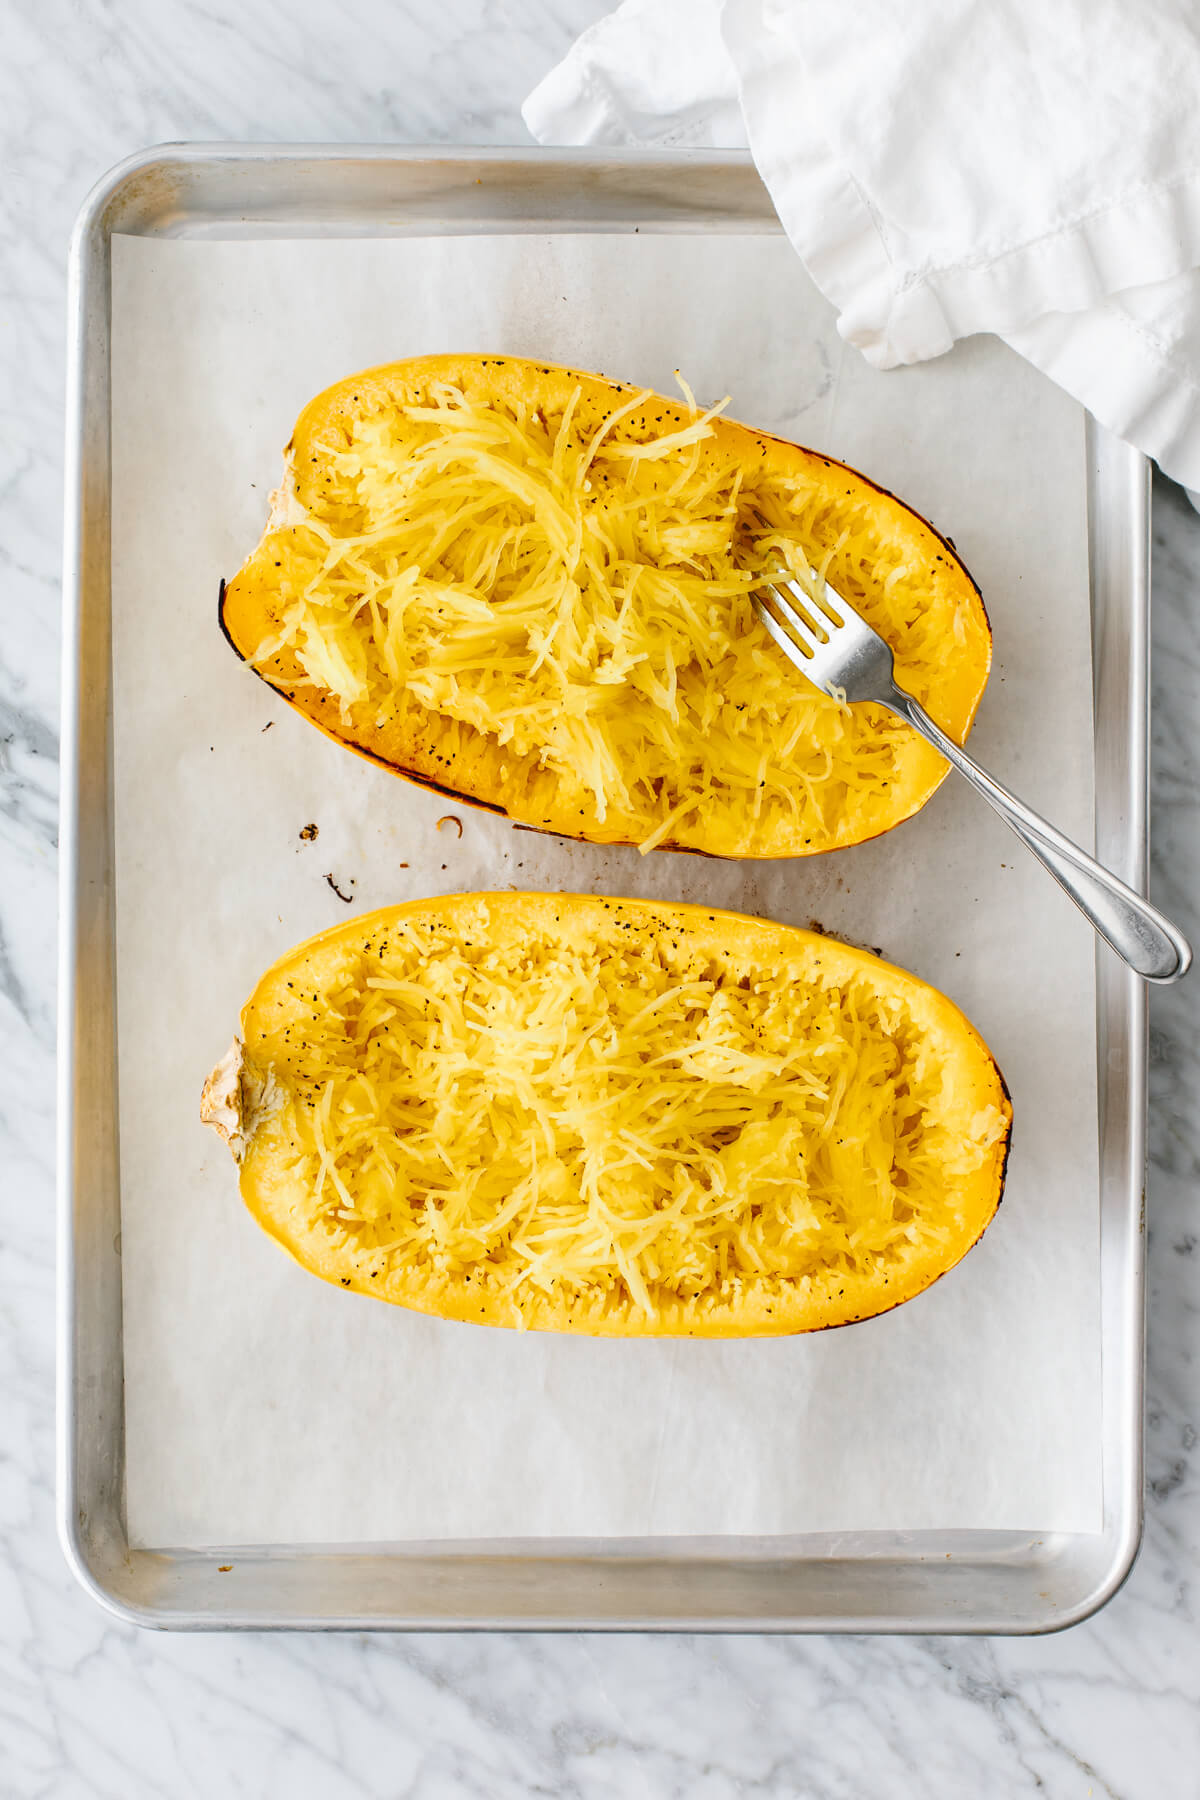 Two spaghetti squash halves with strands fluffed up with a fork.